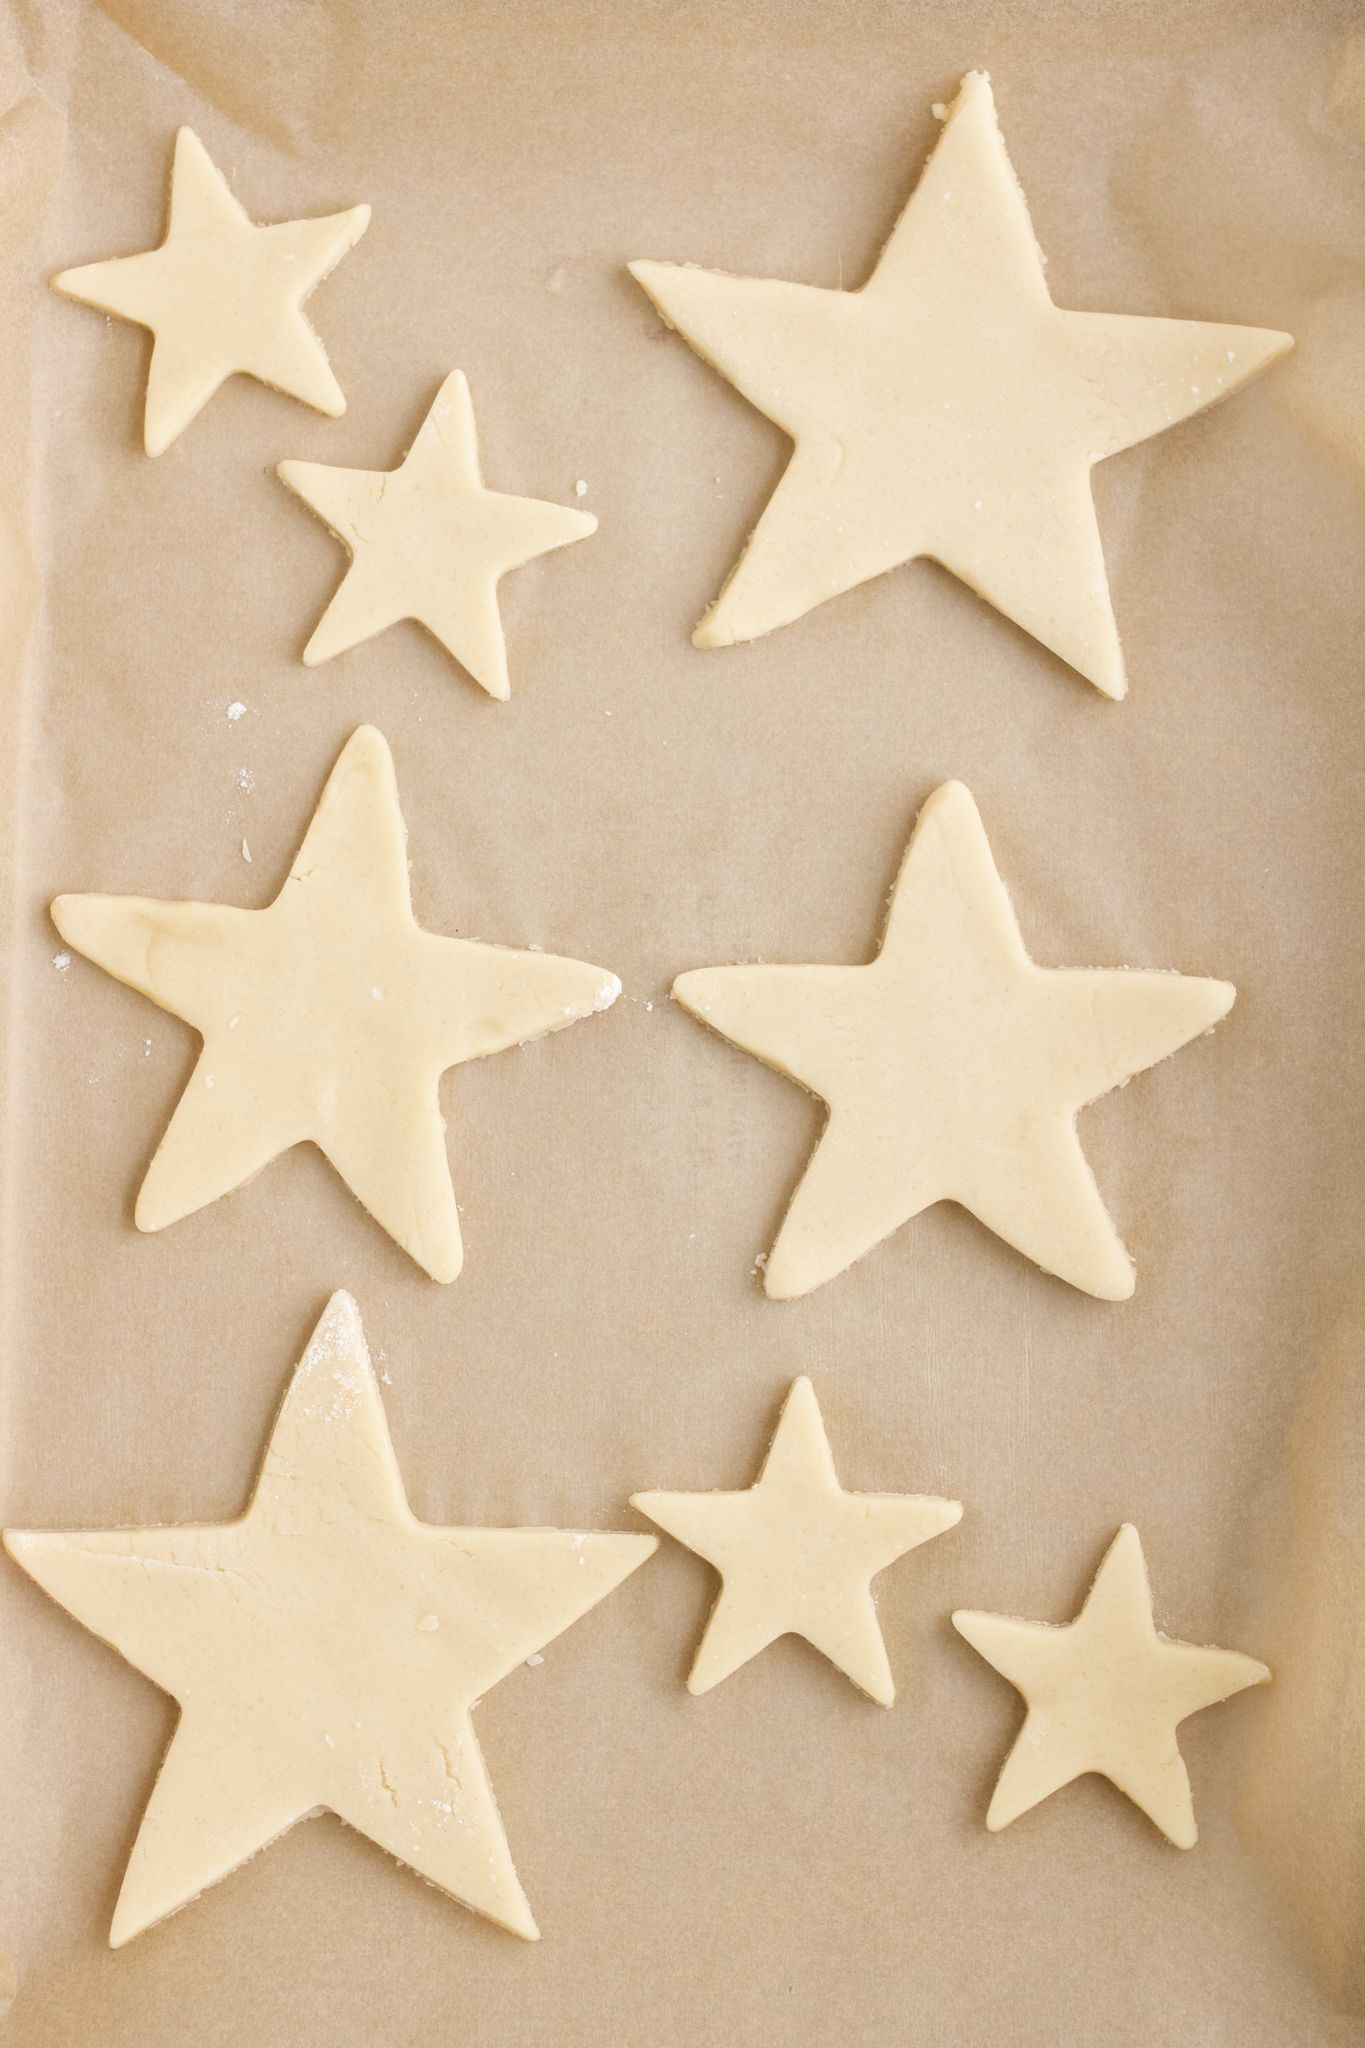 Cut out sugar cookies in a star shape on a parchment lined baking sheet.